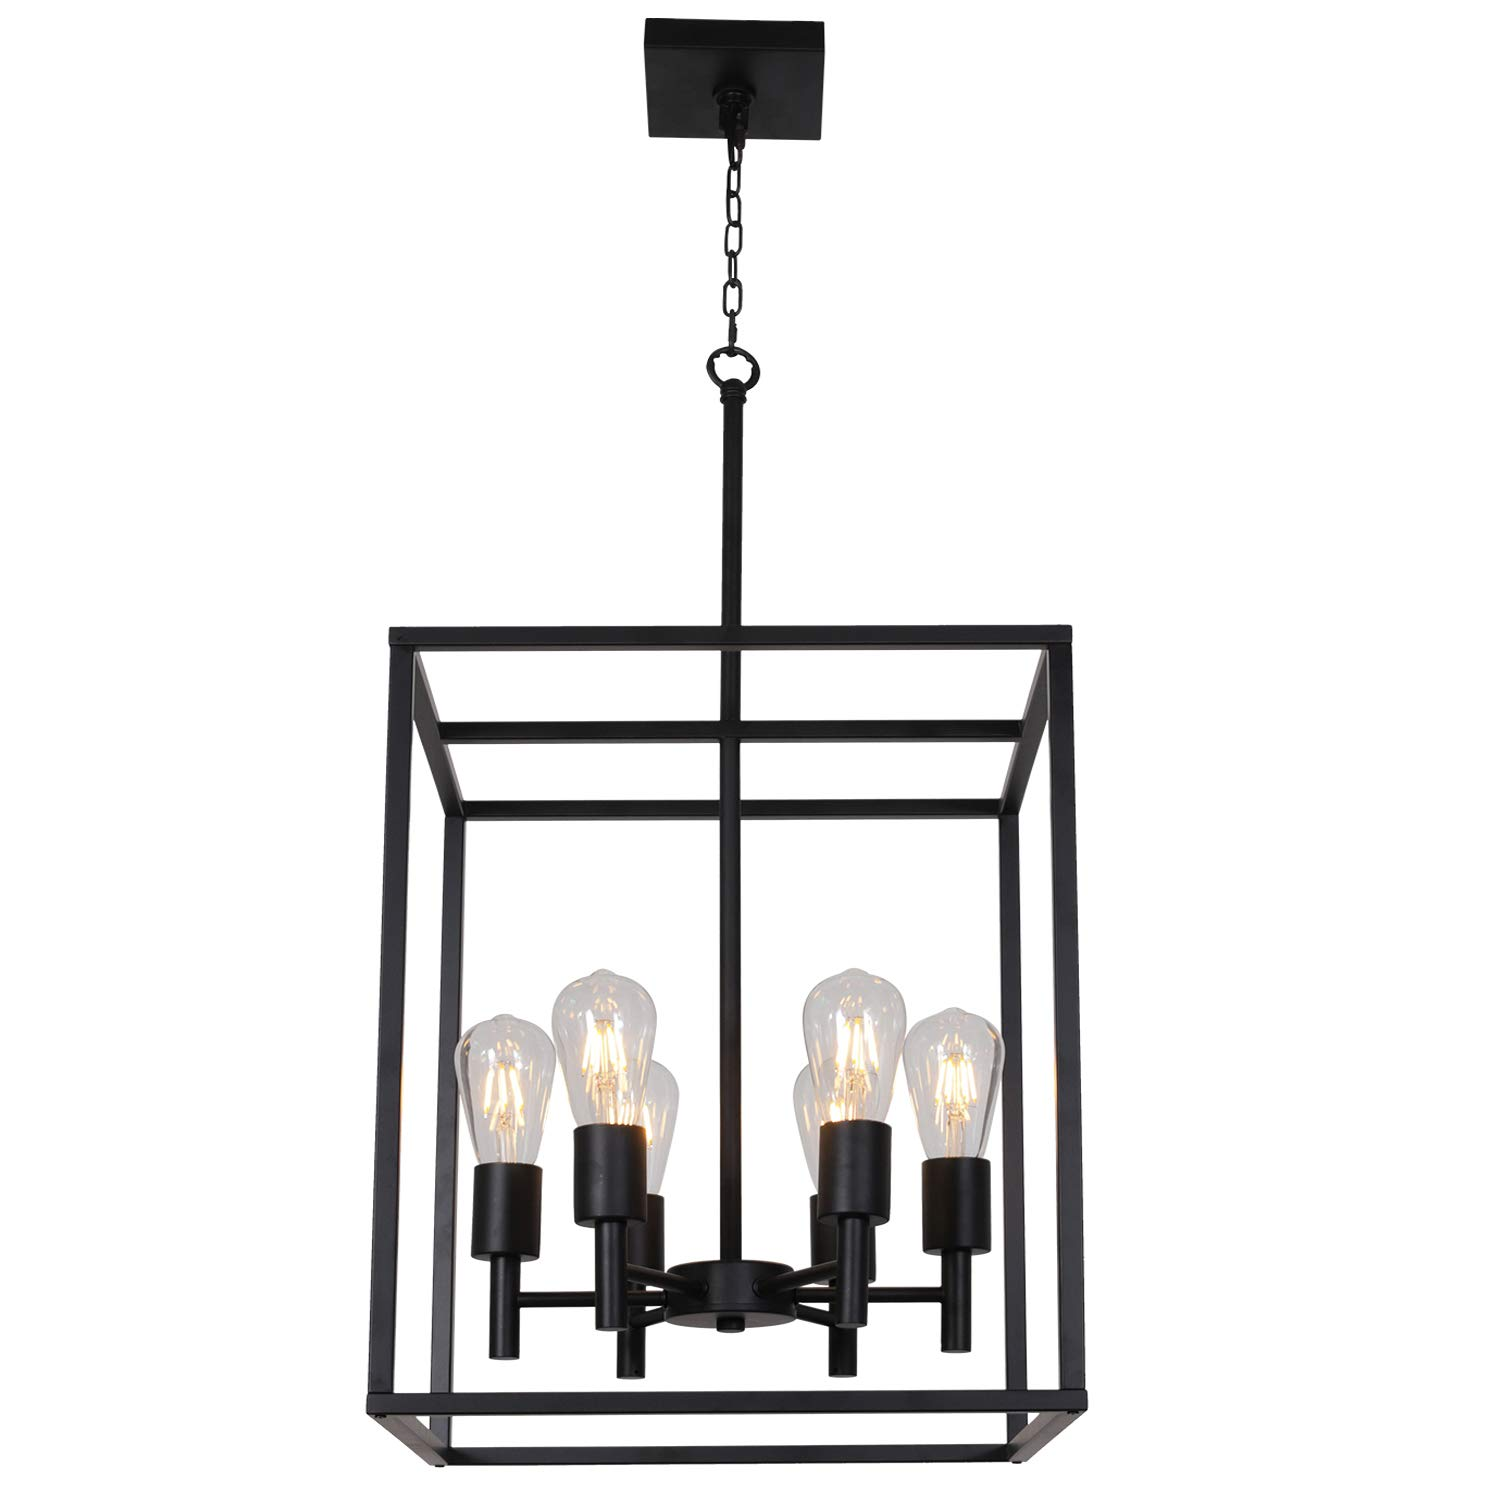 Todoluz 6 lights large cage foyer pendant light 16 inches hallway farmhouse chandelier lighting entryway ceiling lamp black for kitchen dining room